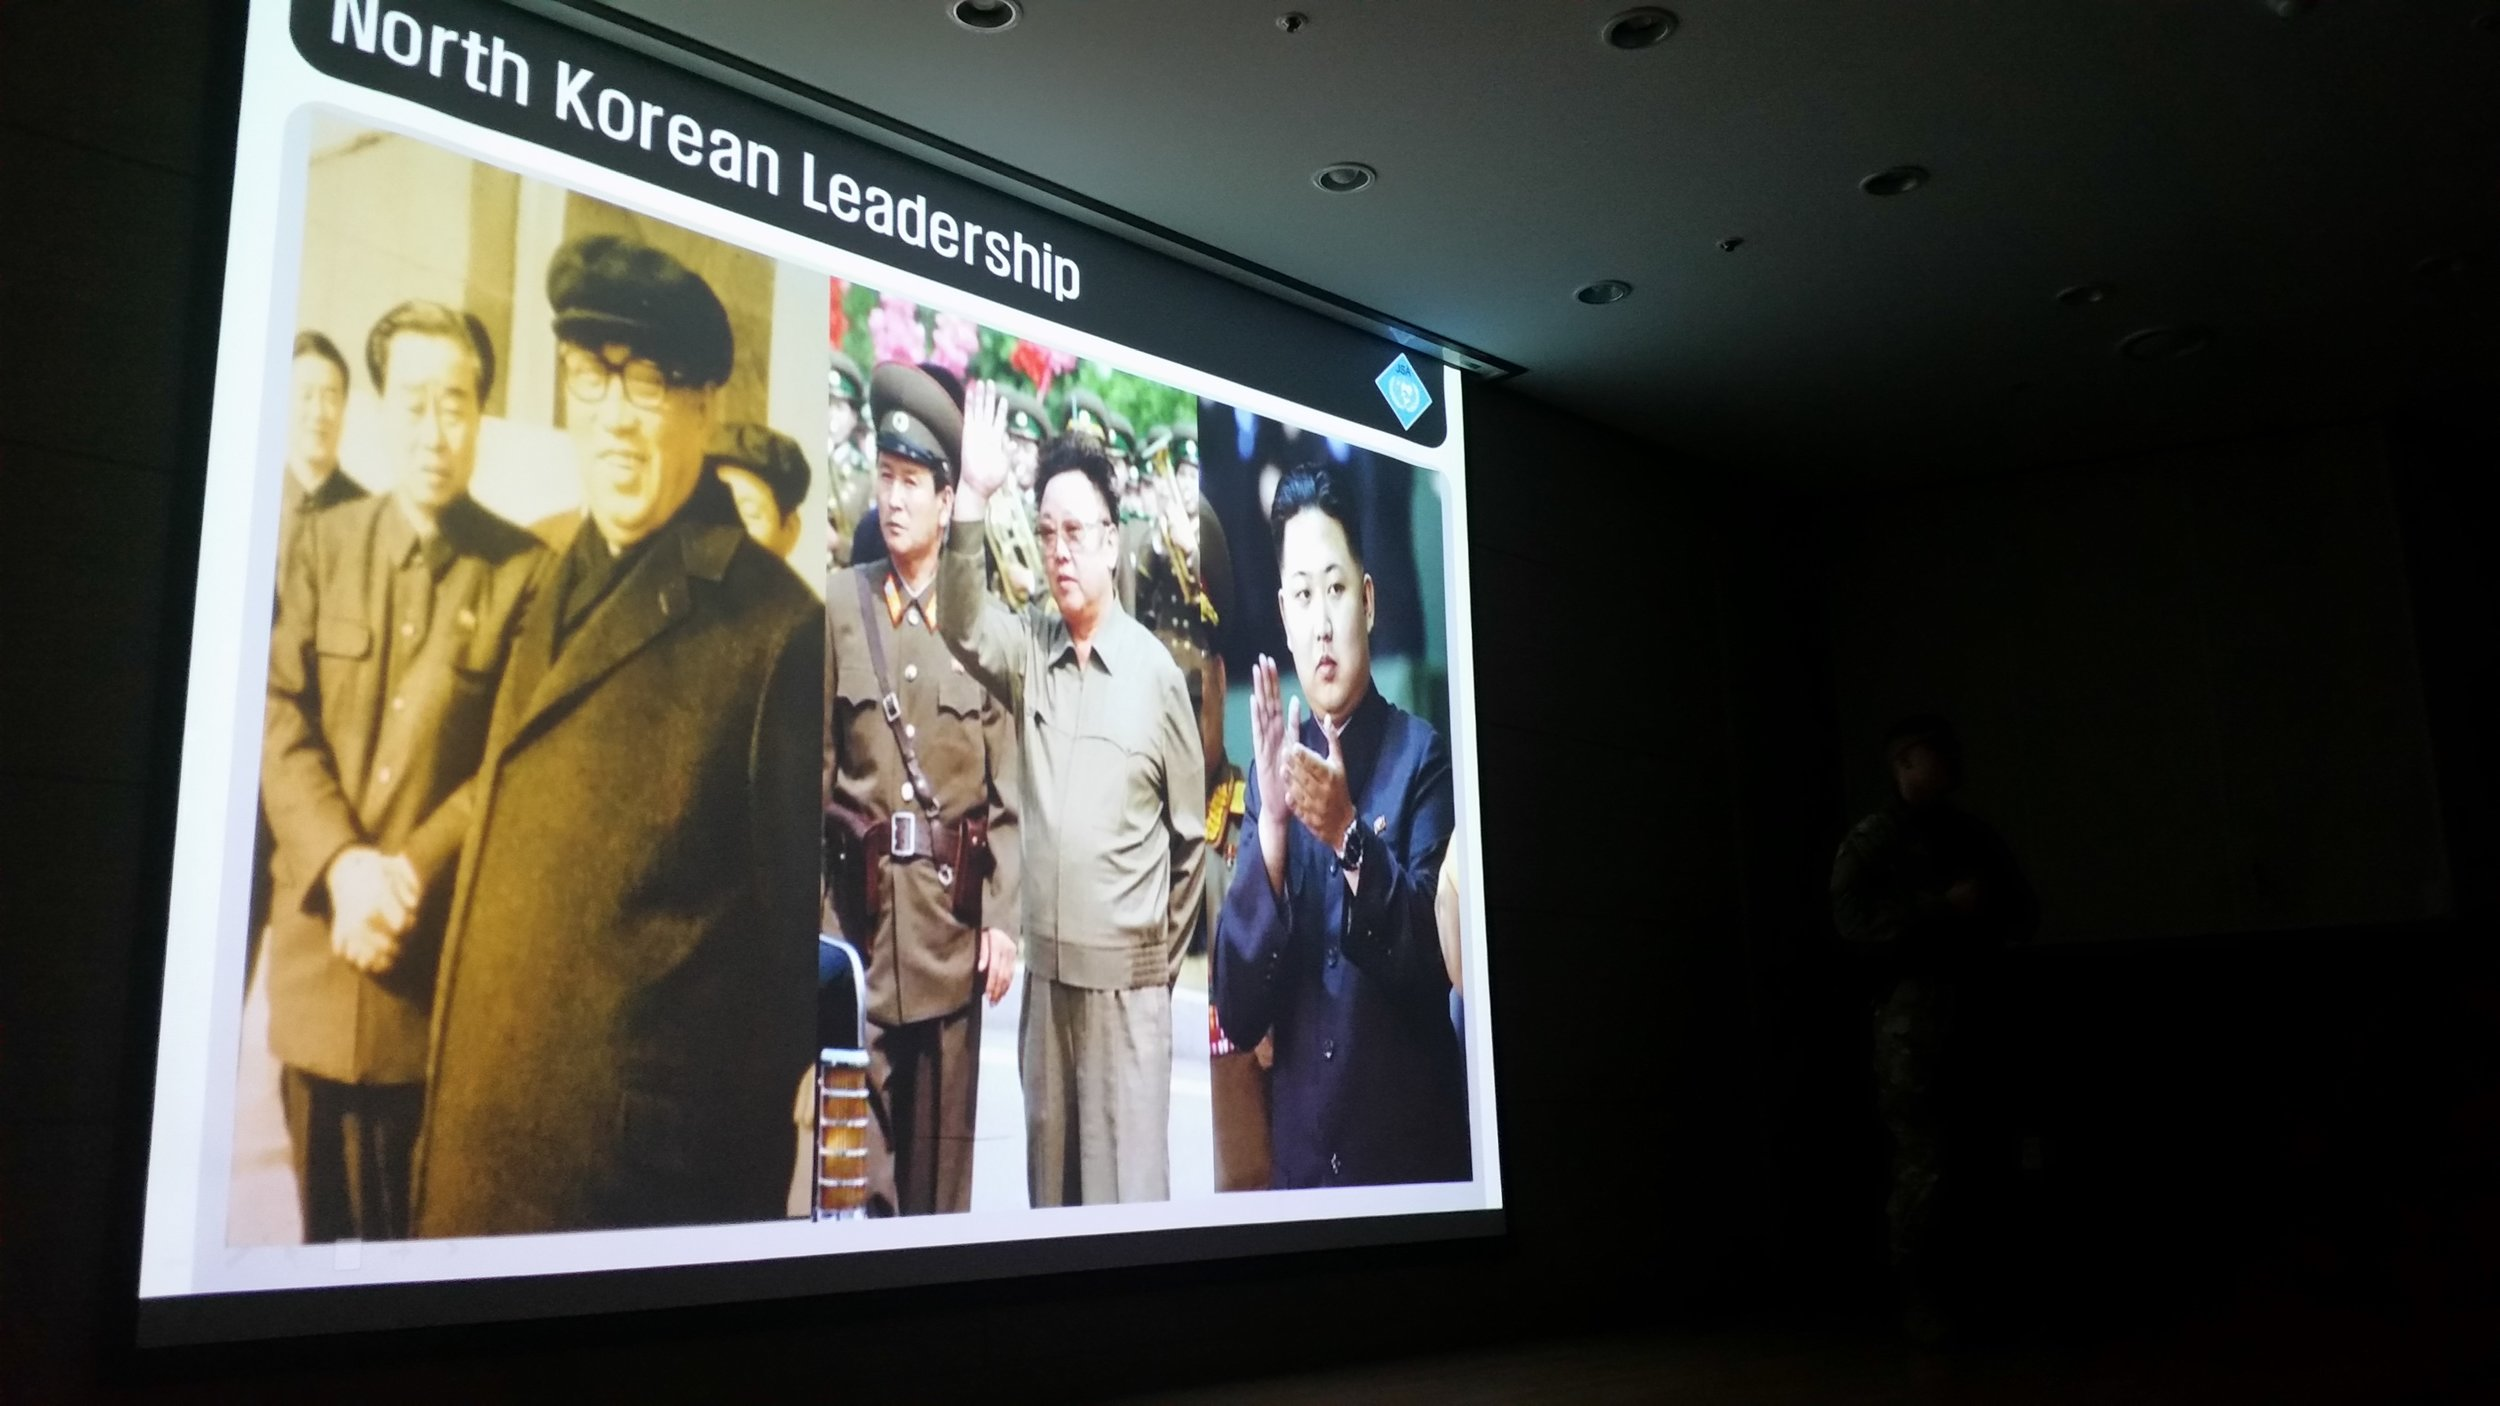 A quick overview of the three generation of the Kim family to rule North Korea.